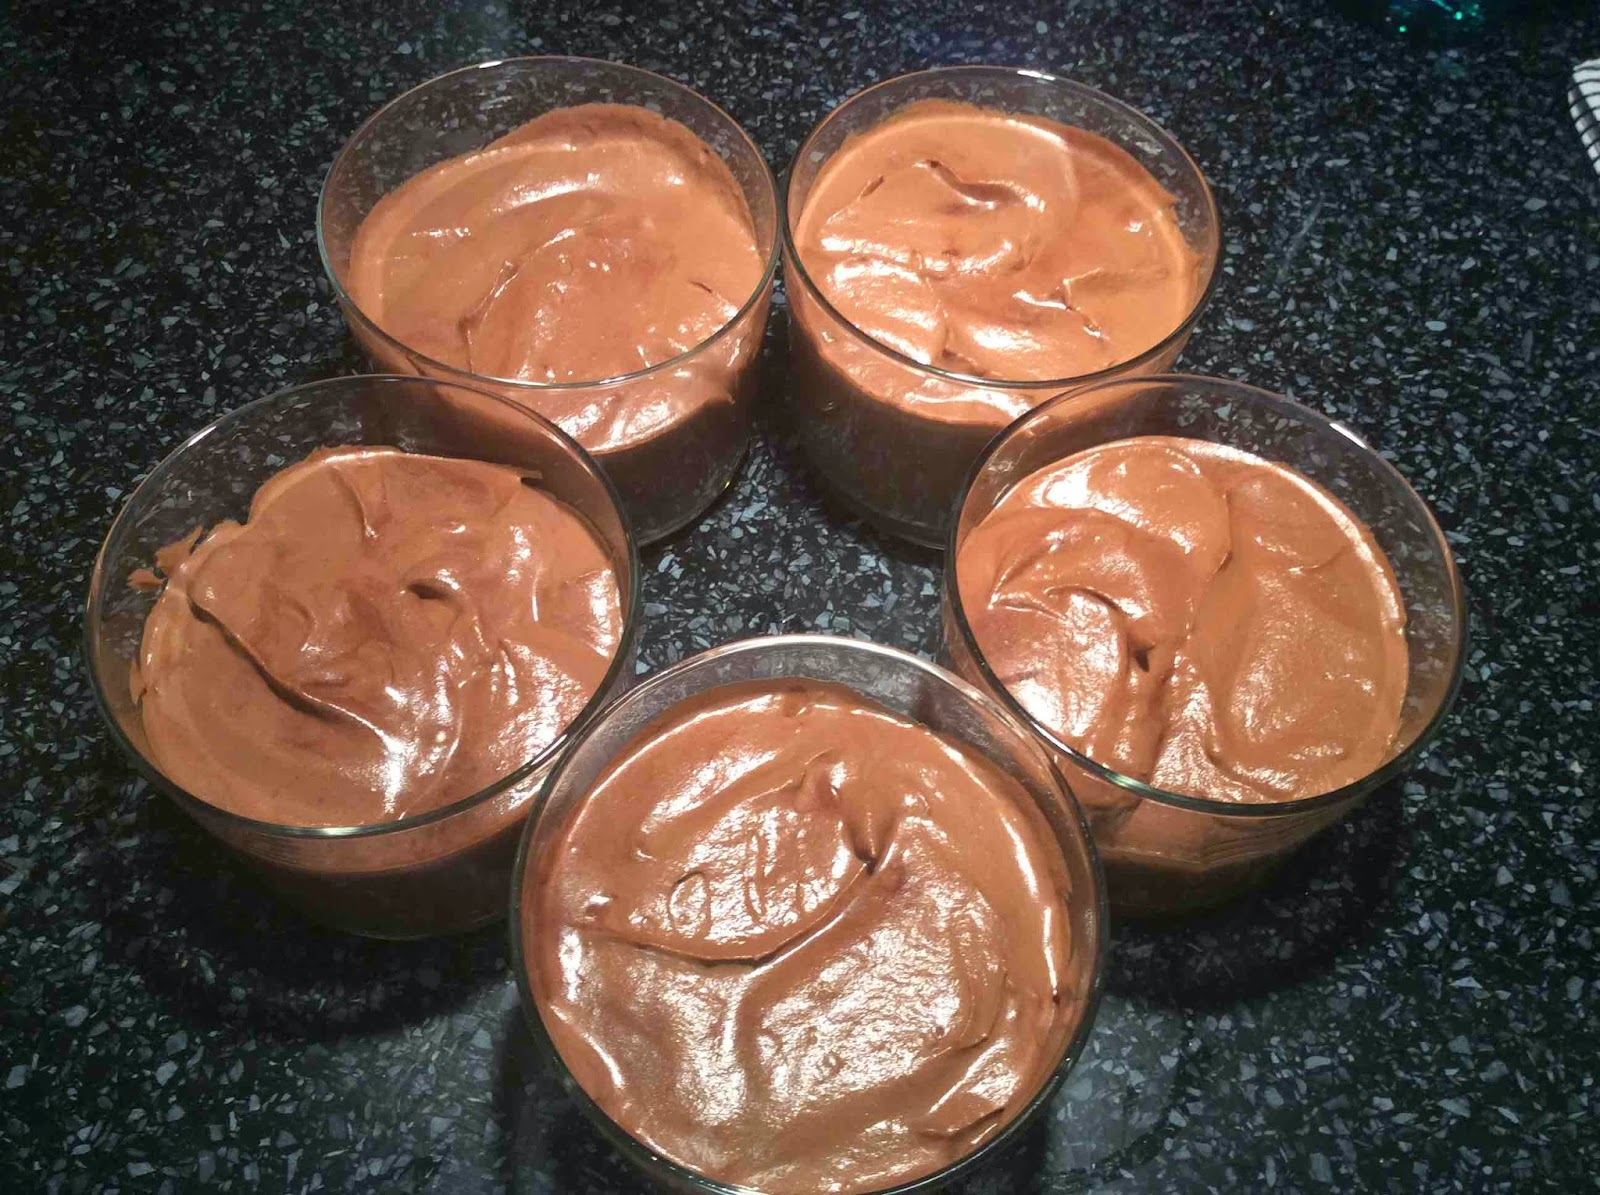 Mousse de chocolate en vasitos